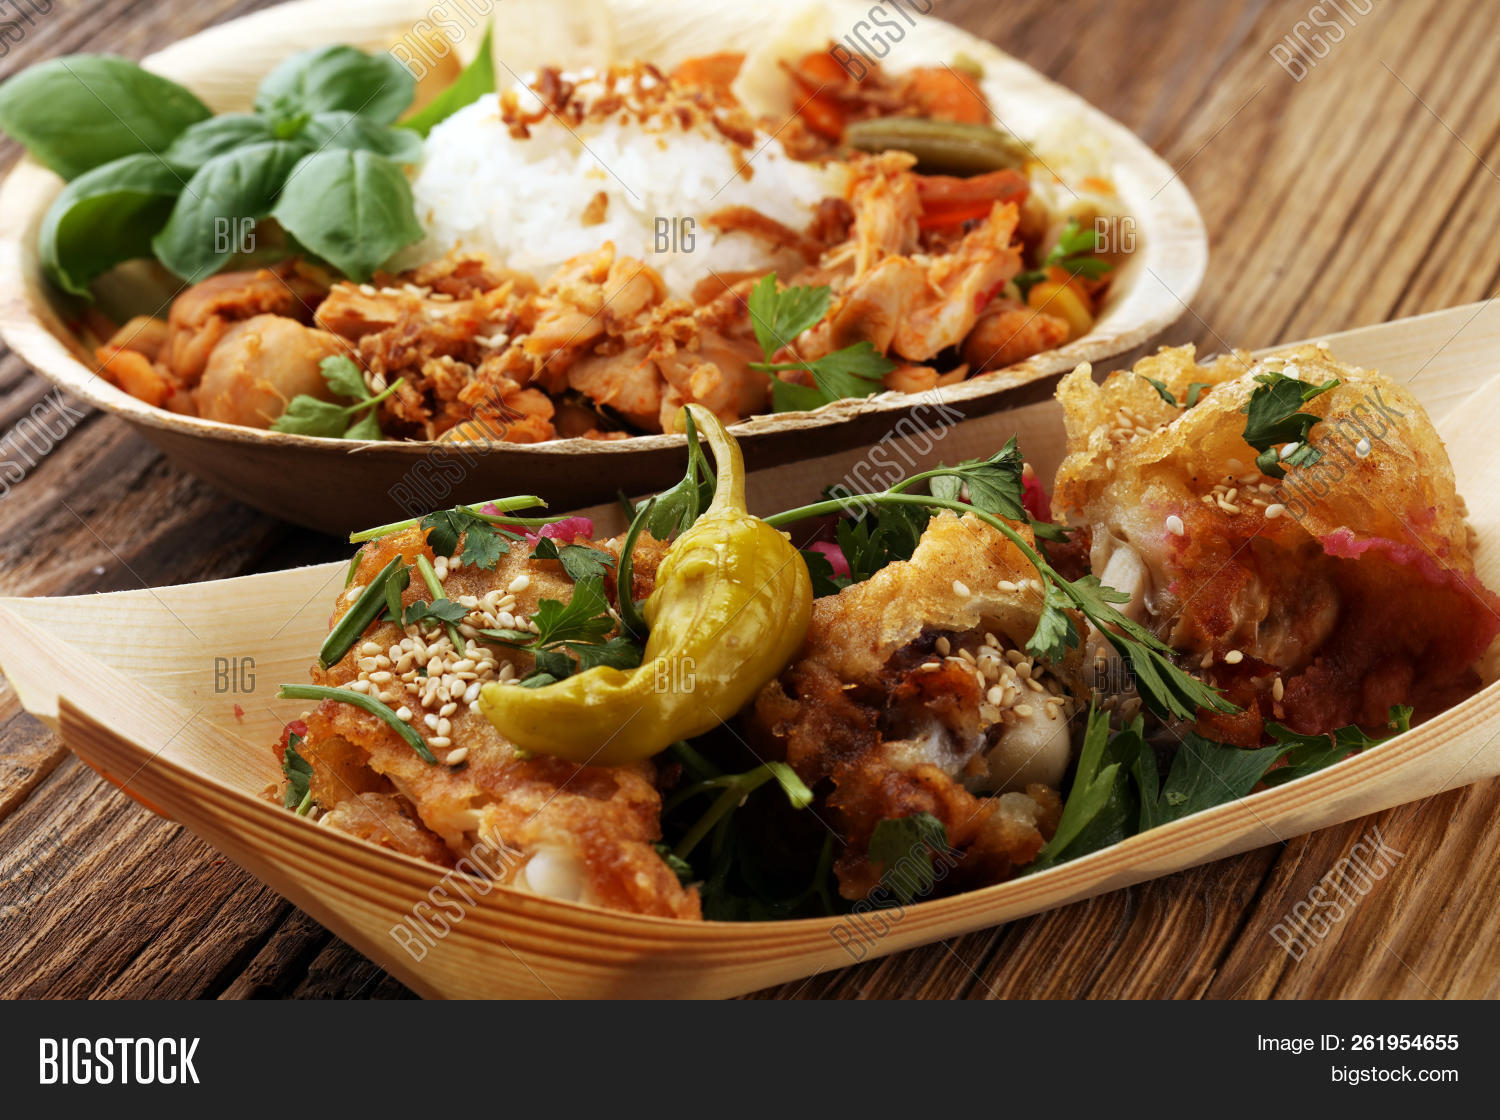 Various Street Food Image Photo Free Trial Bigstock